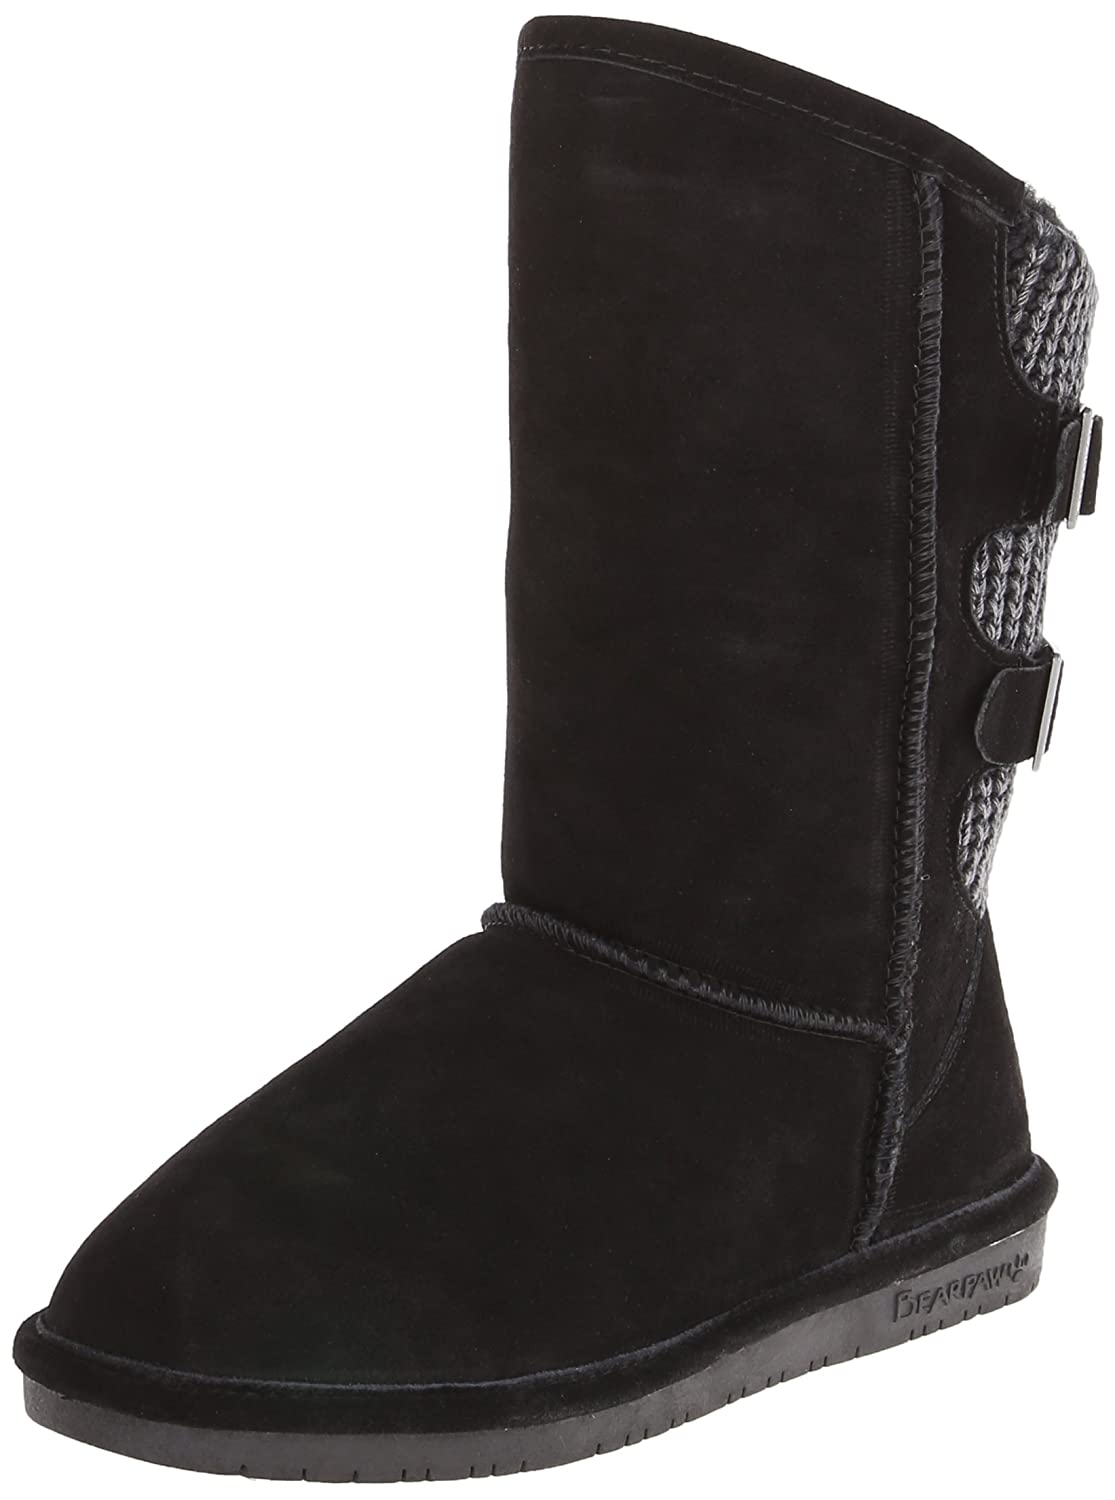 BEARPAW Women's Boshie Winter Boot B07D8JTG3V 6 W US|Black